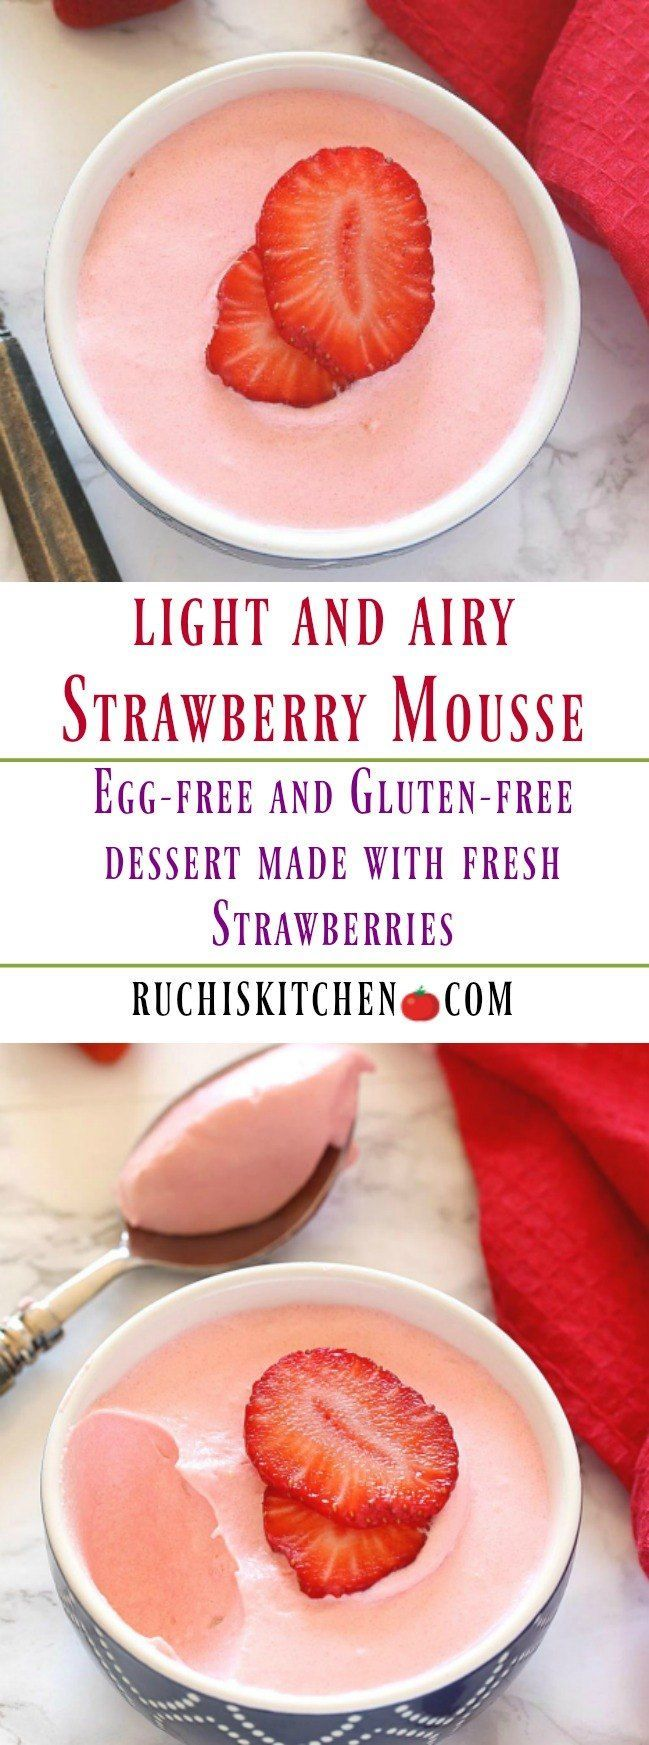 A light and airy Eggless Strawberry Mousse made with fresh strawberries and homemade whipped cream. An incredibly delicious and luscious treat perfect for your Valentine's day or any other day celebrations! #mousse #eggfree #glutenfree #dessert #eggfreemousse #strawberries #valentines #easydessert